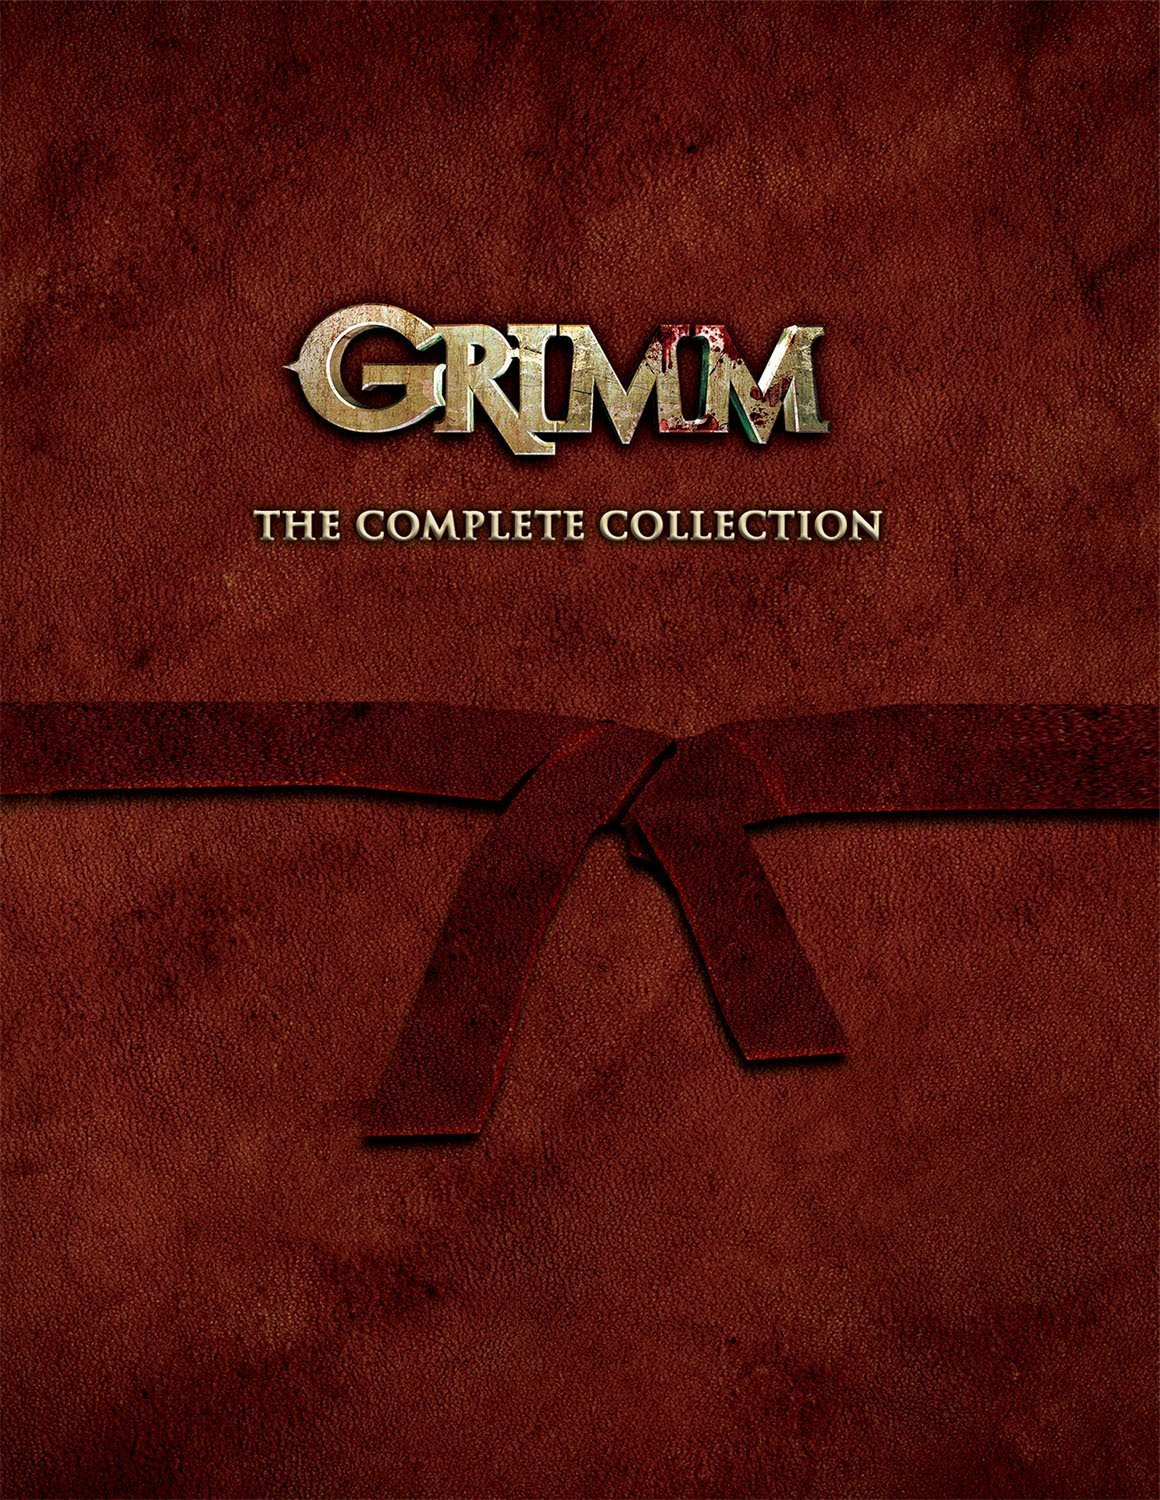 Grimm The Complete Collection on DVD and Blu-ray Disc – Release Date, Package Art